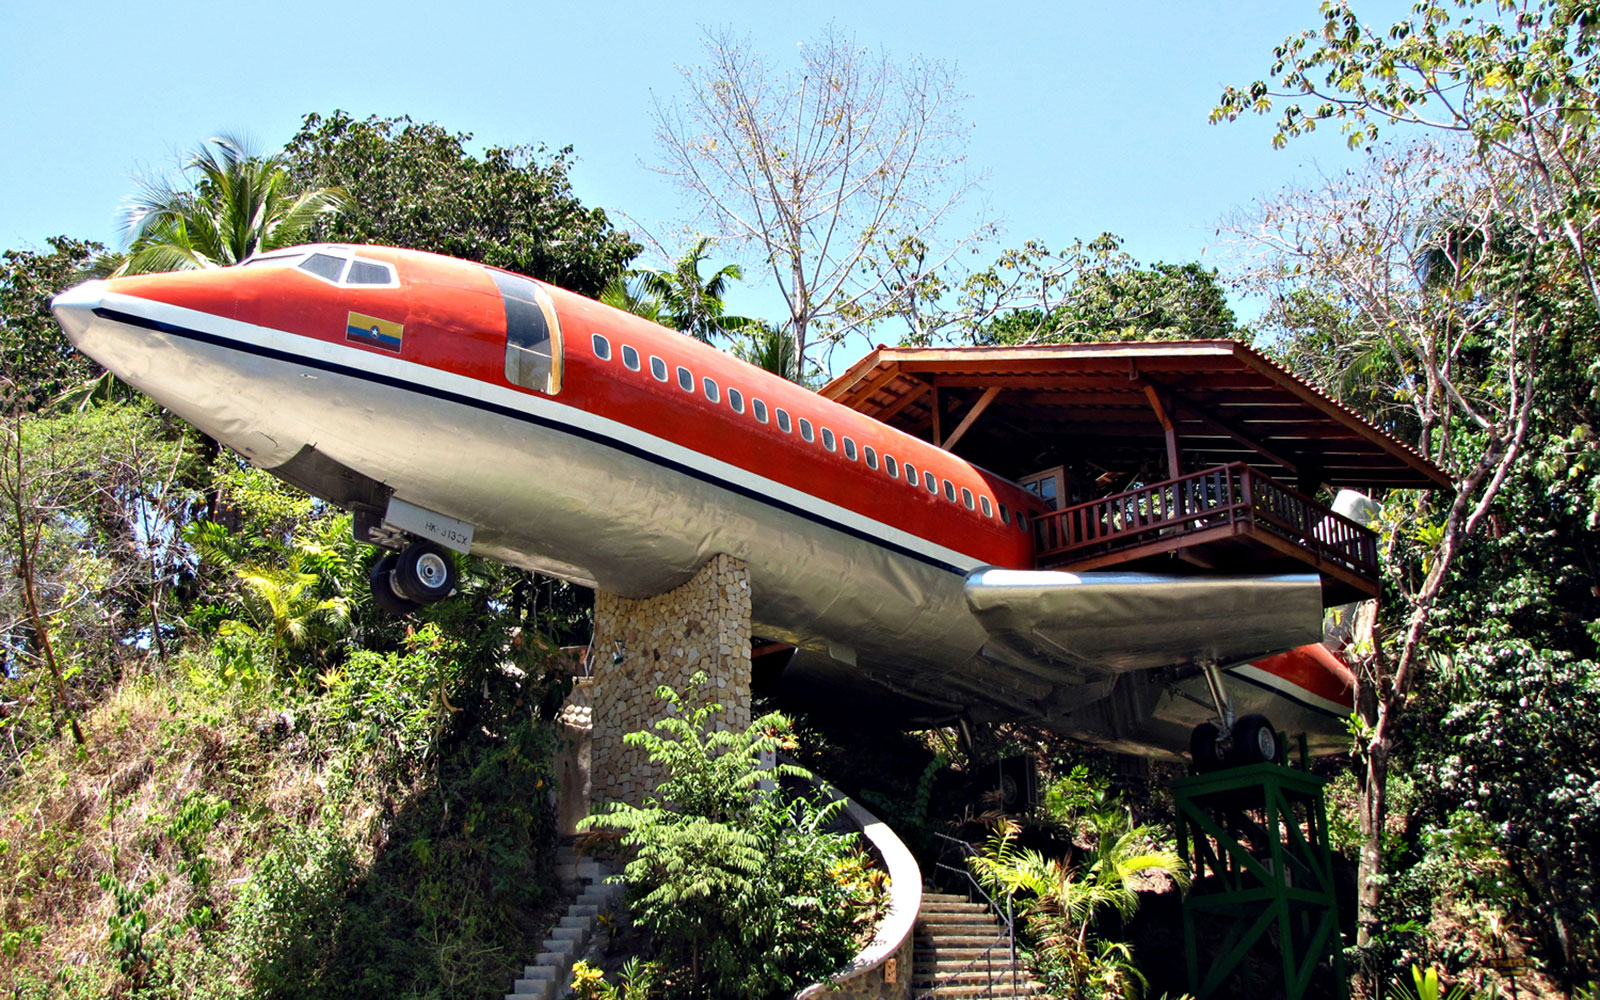 Costa Verde 727 in Manuel Antonio, Costa Rica